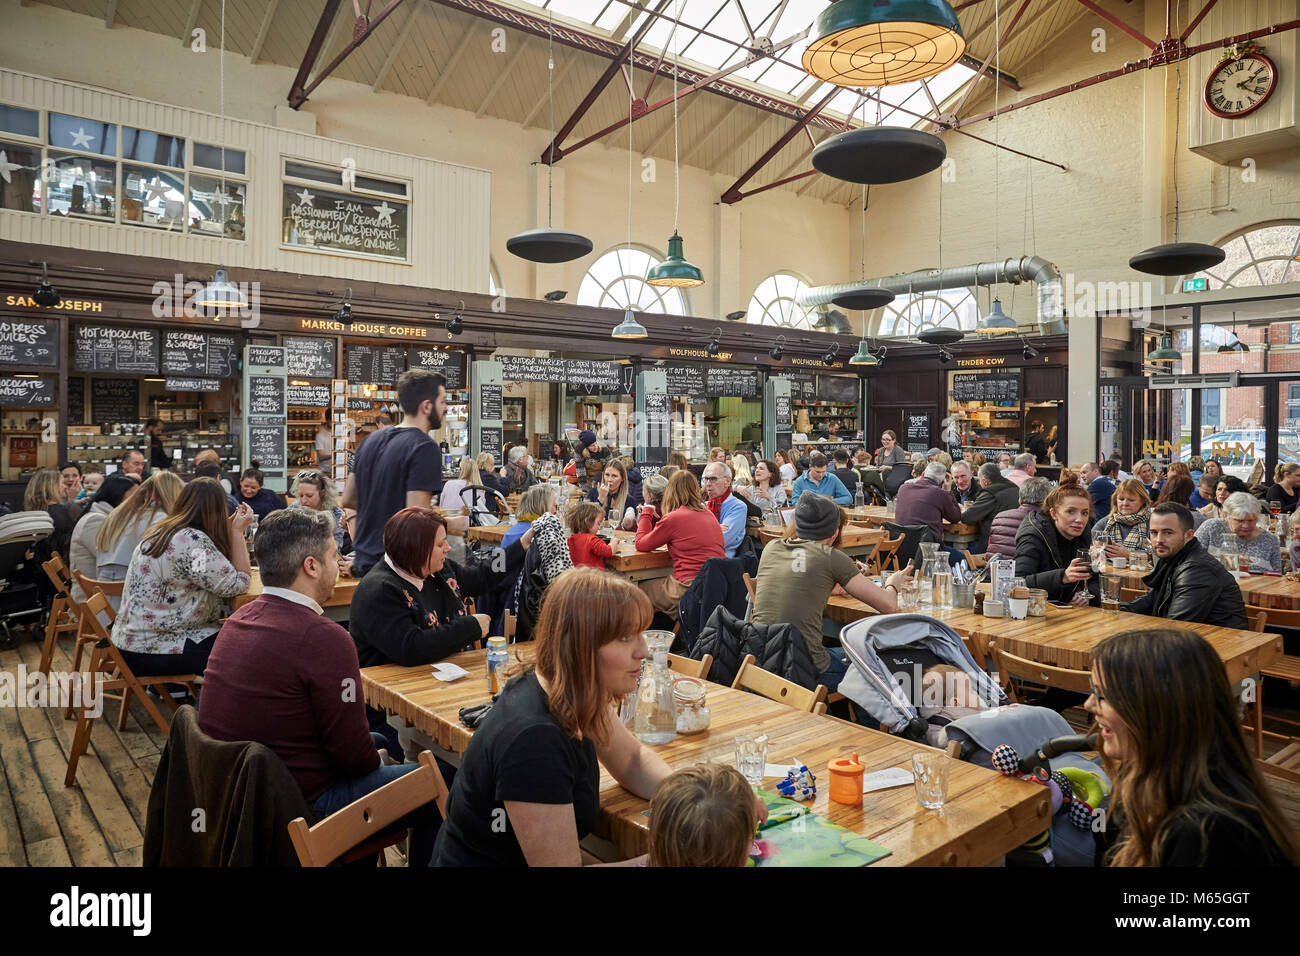 Market House Coffee stall in the Grade II listed Market house in Altrincham town centre, Cheshire. A busy and exciting food destination Stock Photo